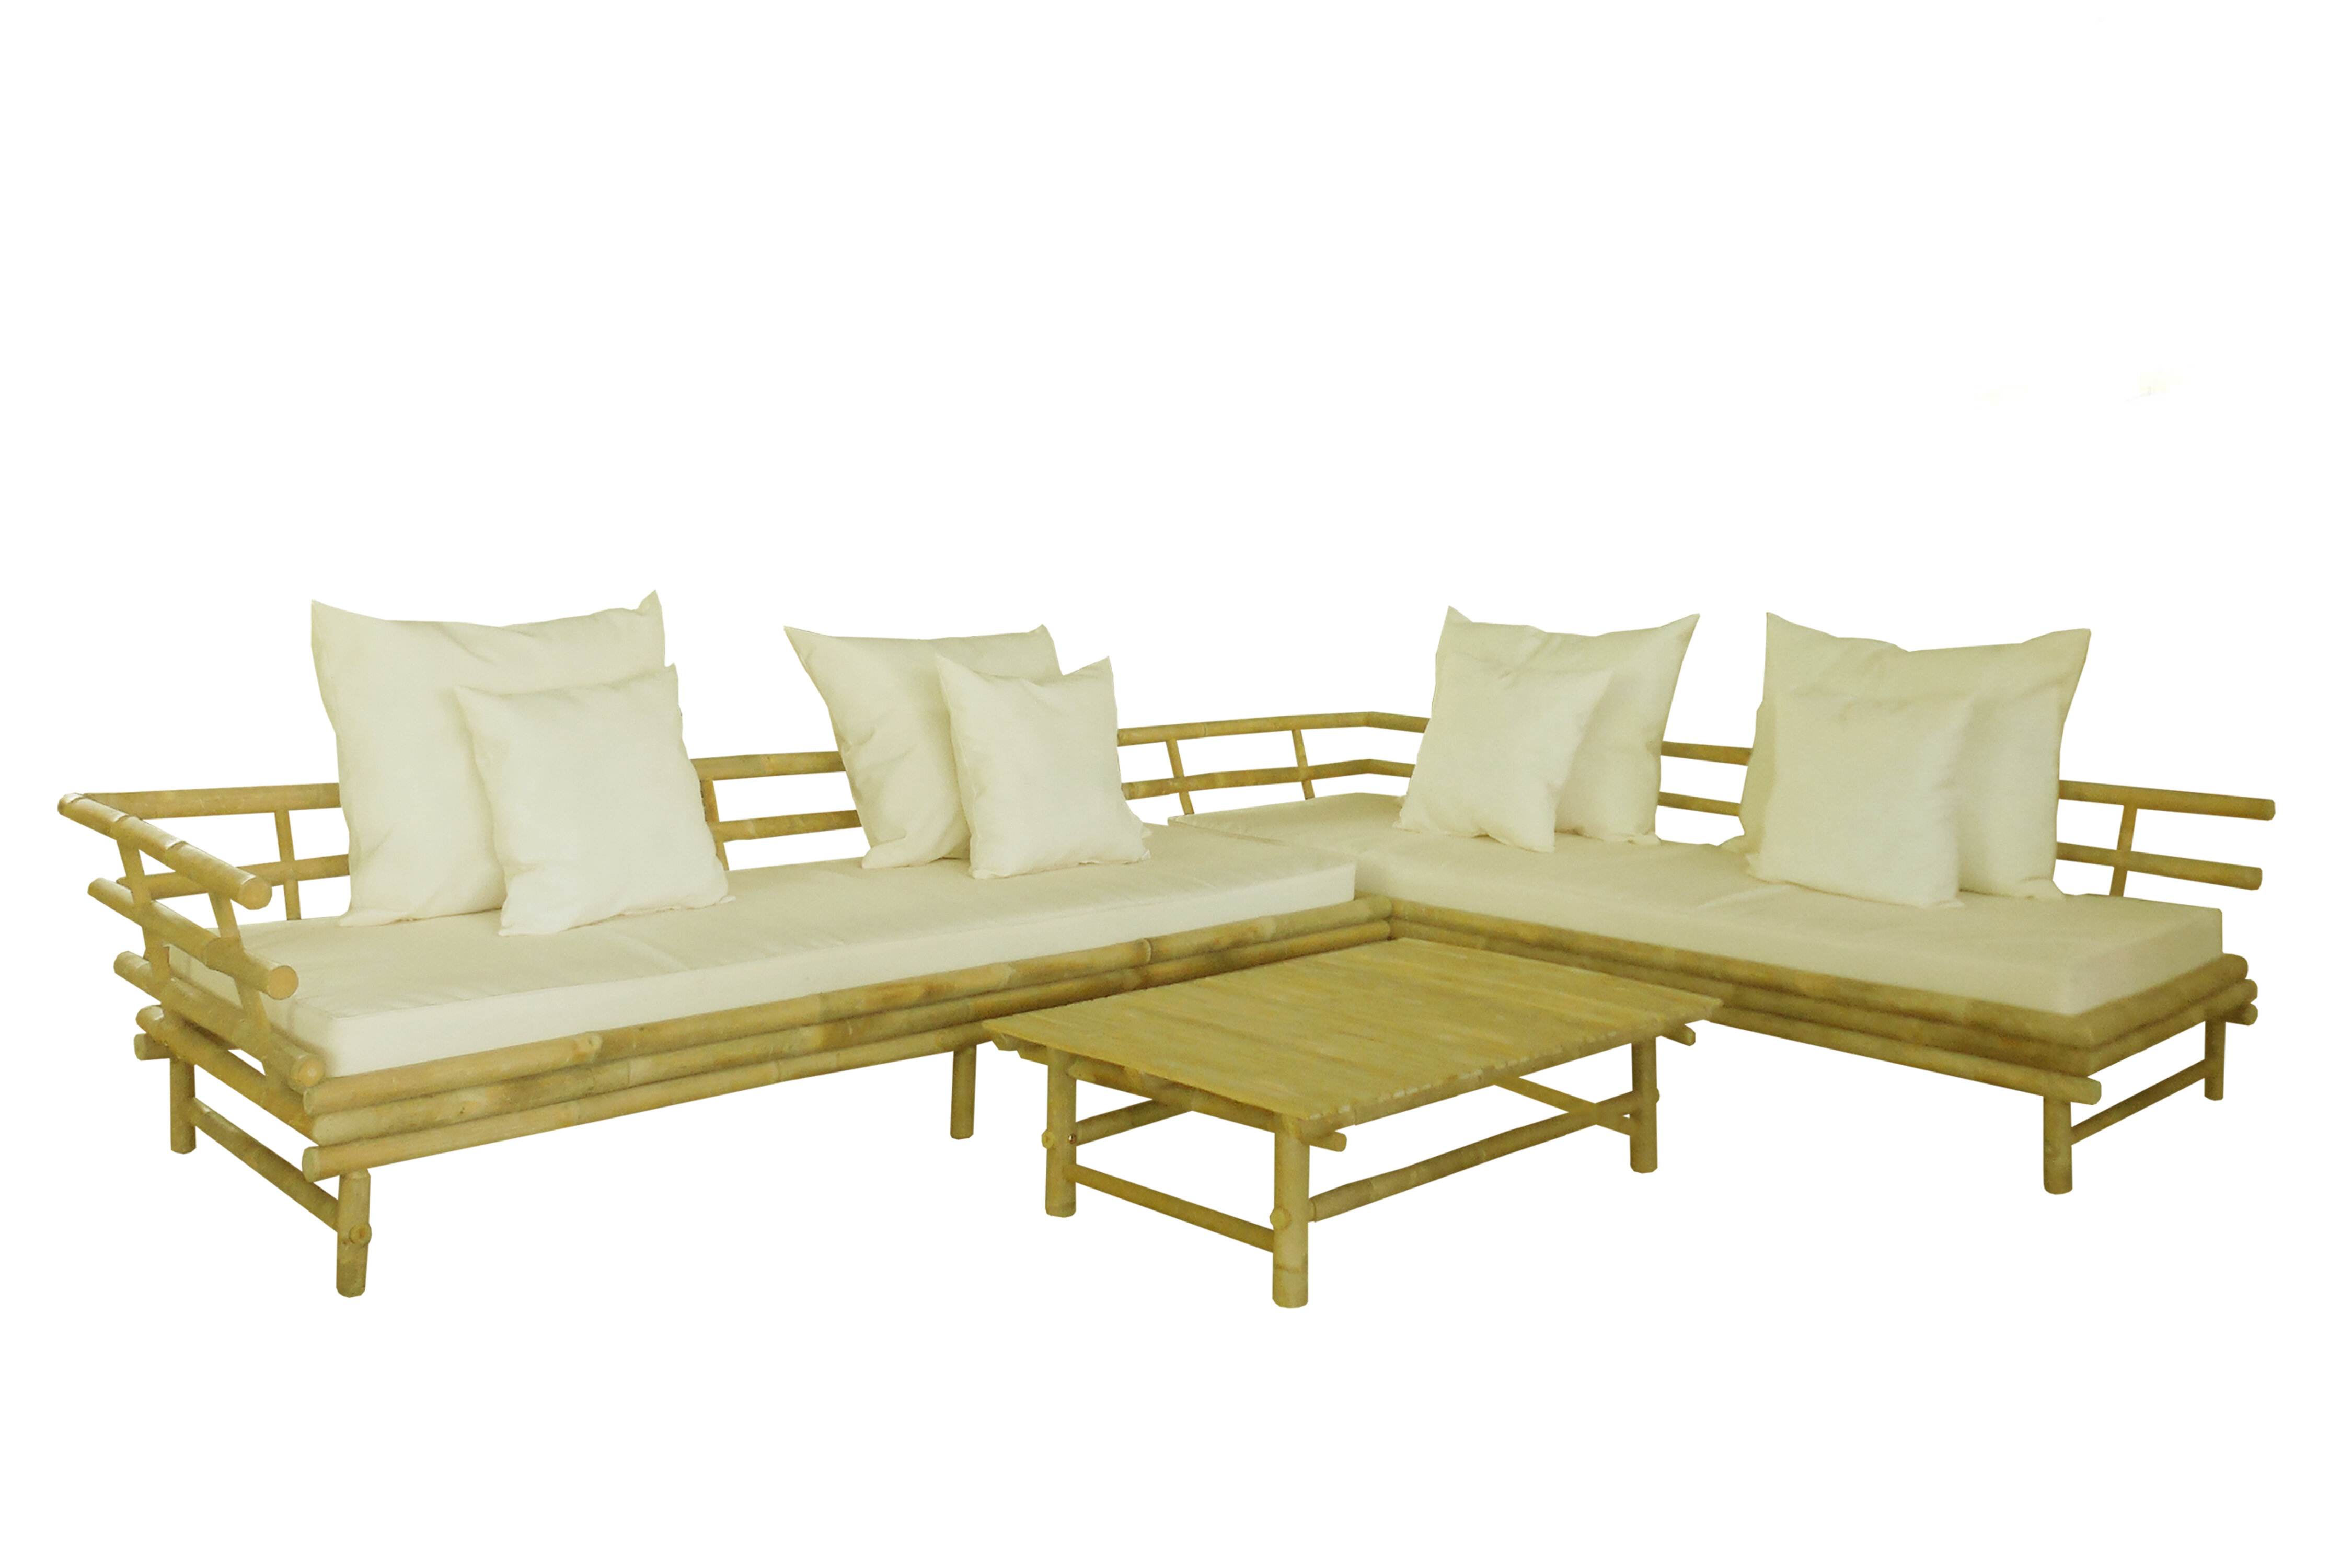 hydra cindy home furniture hm crawford loveseat bamboo richards collections montclair